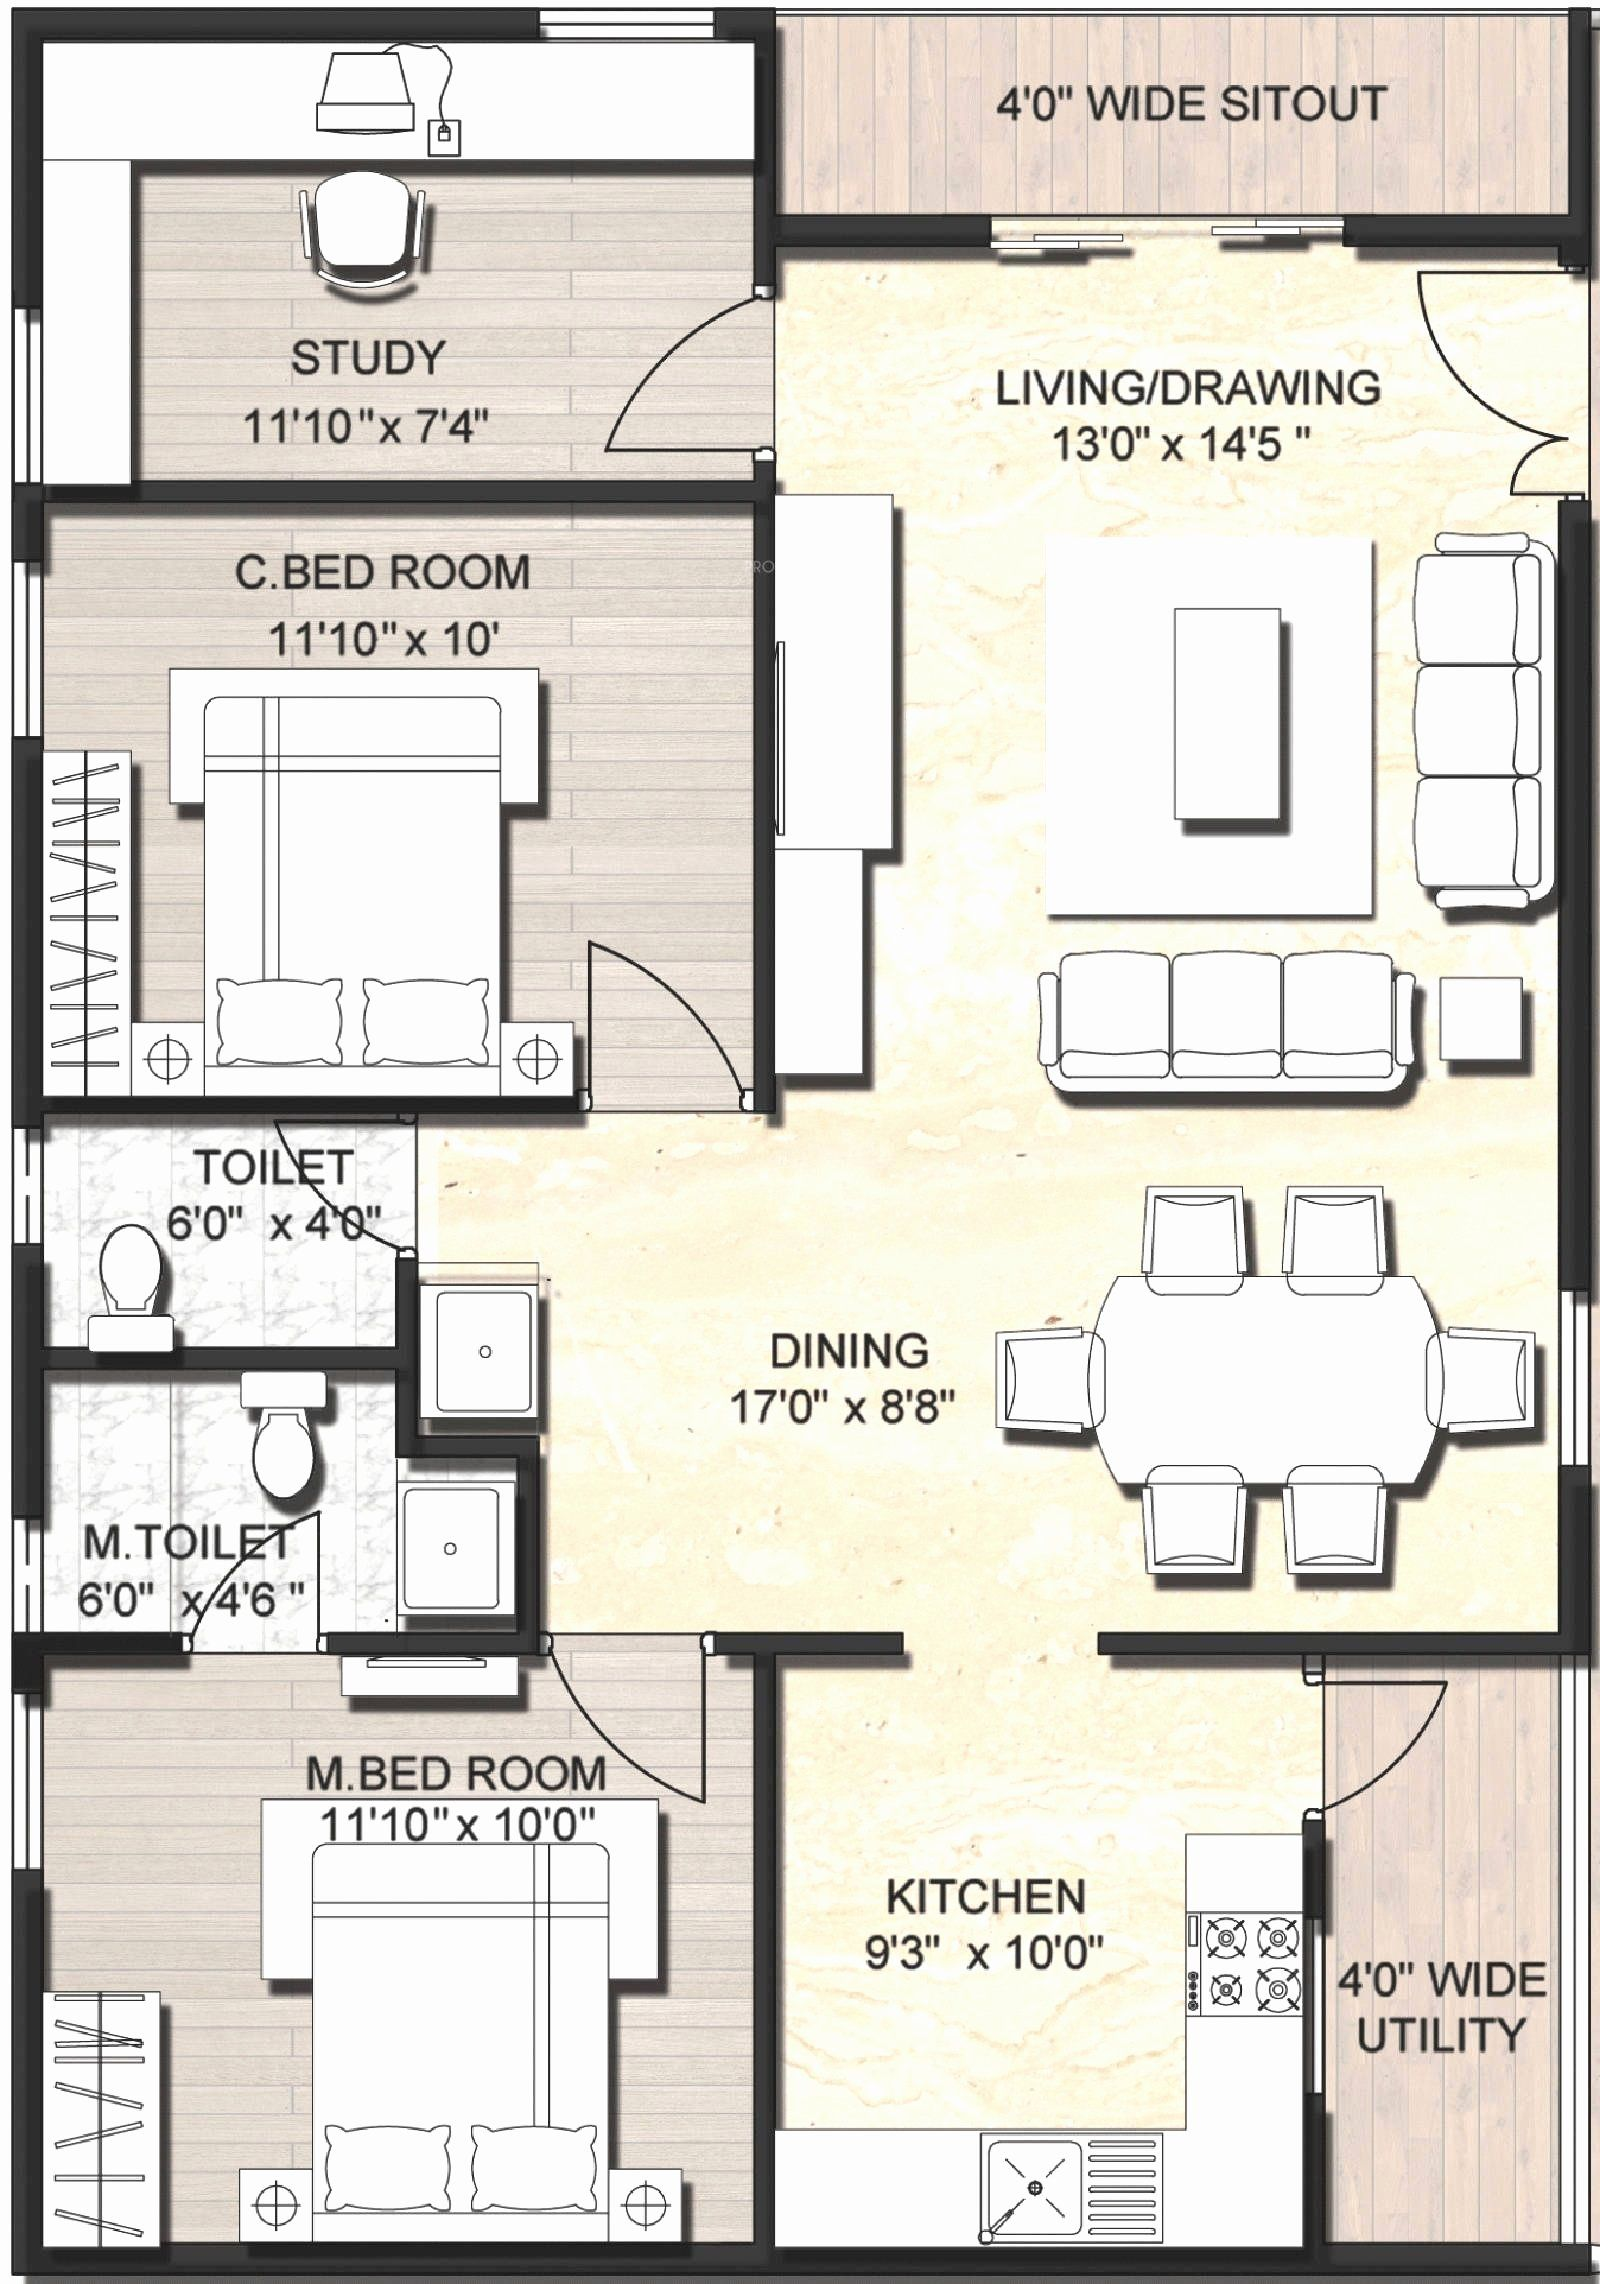 2 Bhk Home Design In India New 21 Artistic Home Plans Indian 2bhk That Can Make Your Home In 2020 Model House Plan Indian House Plans 1200 Sq Ft House